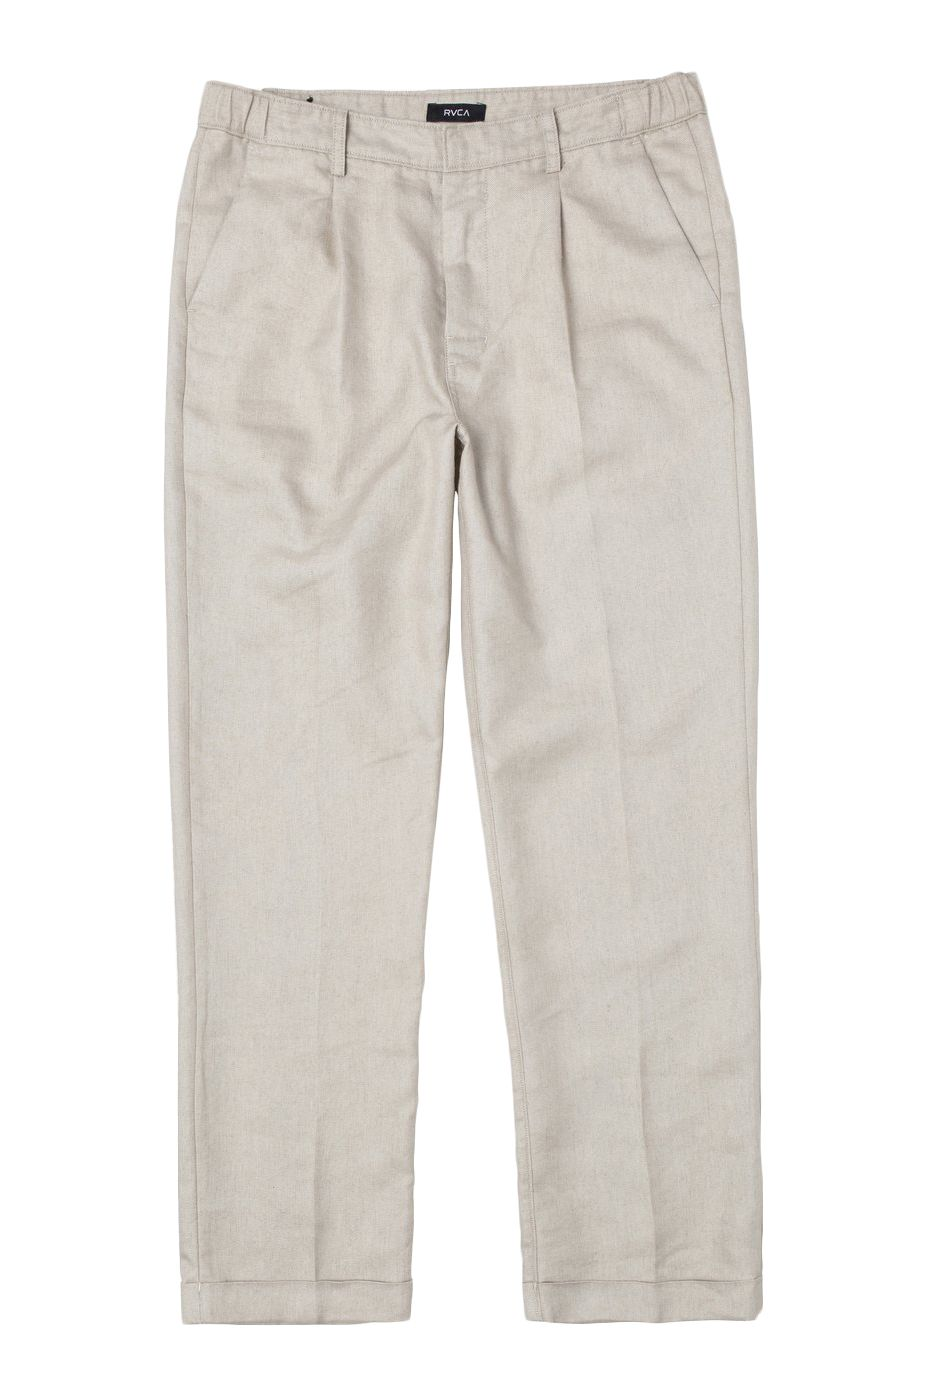 RVCA Pants ALL TIME LOMAX PANT Silver Bleach